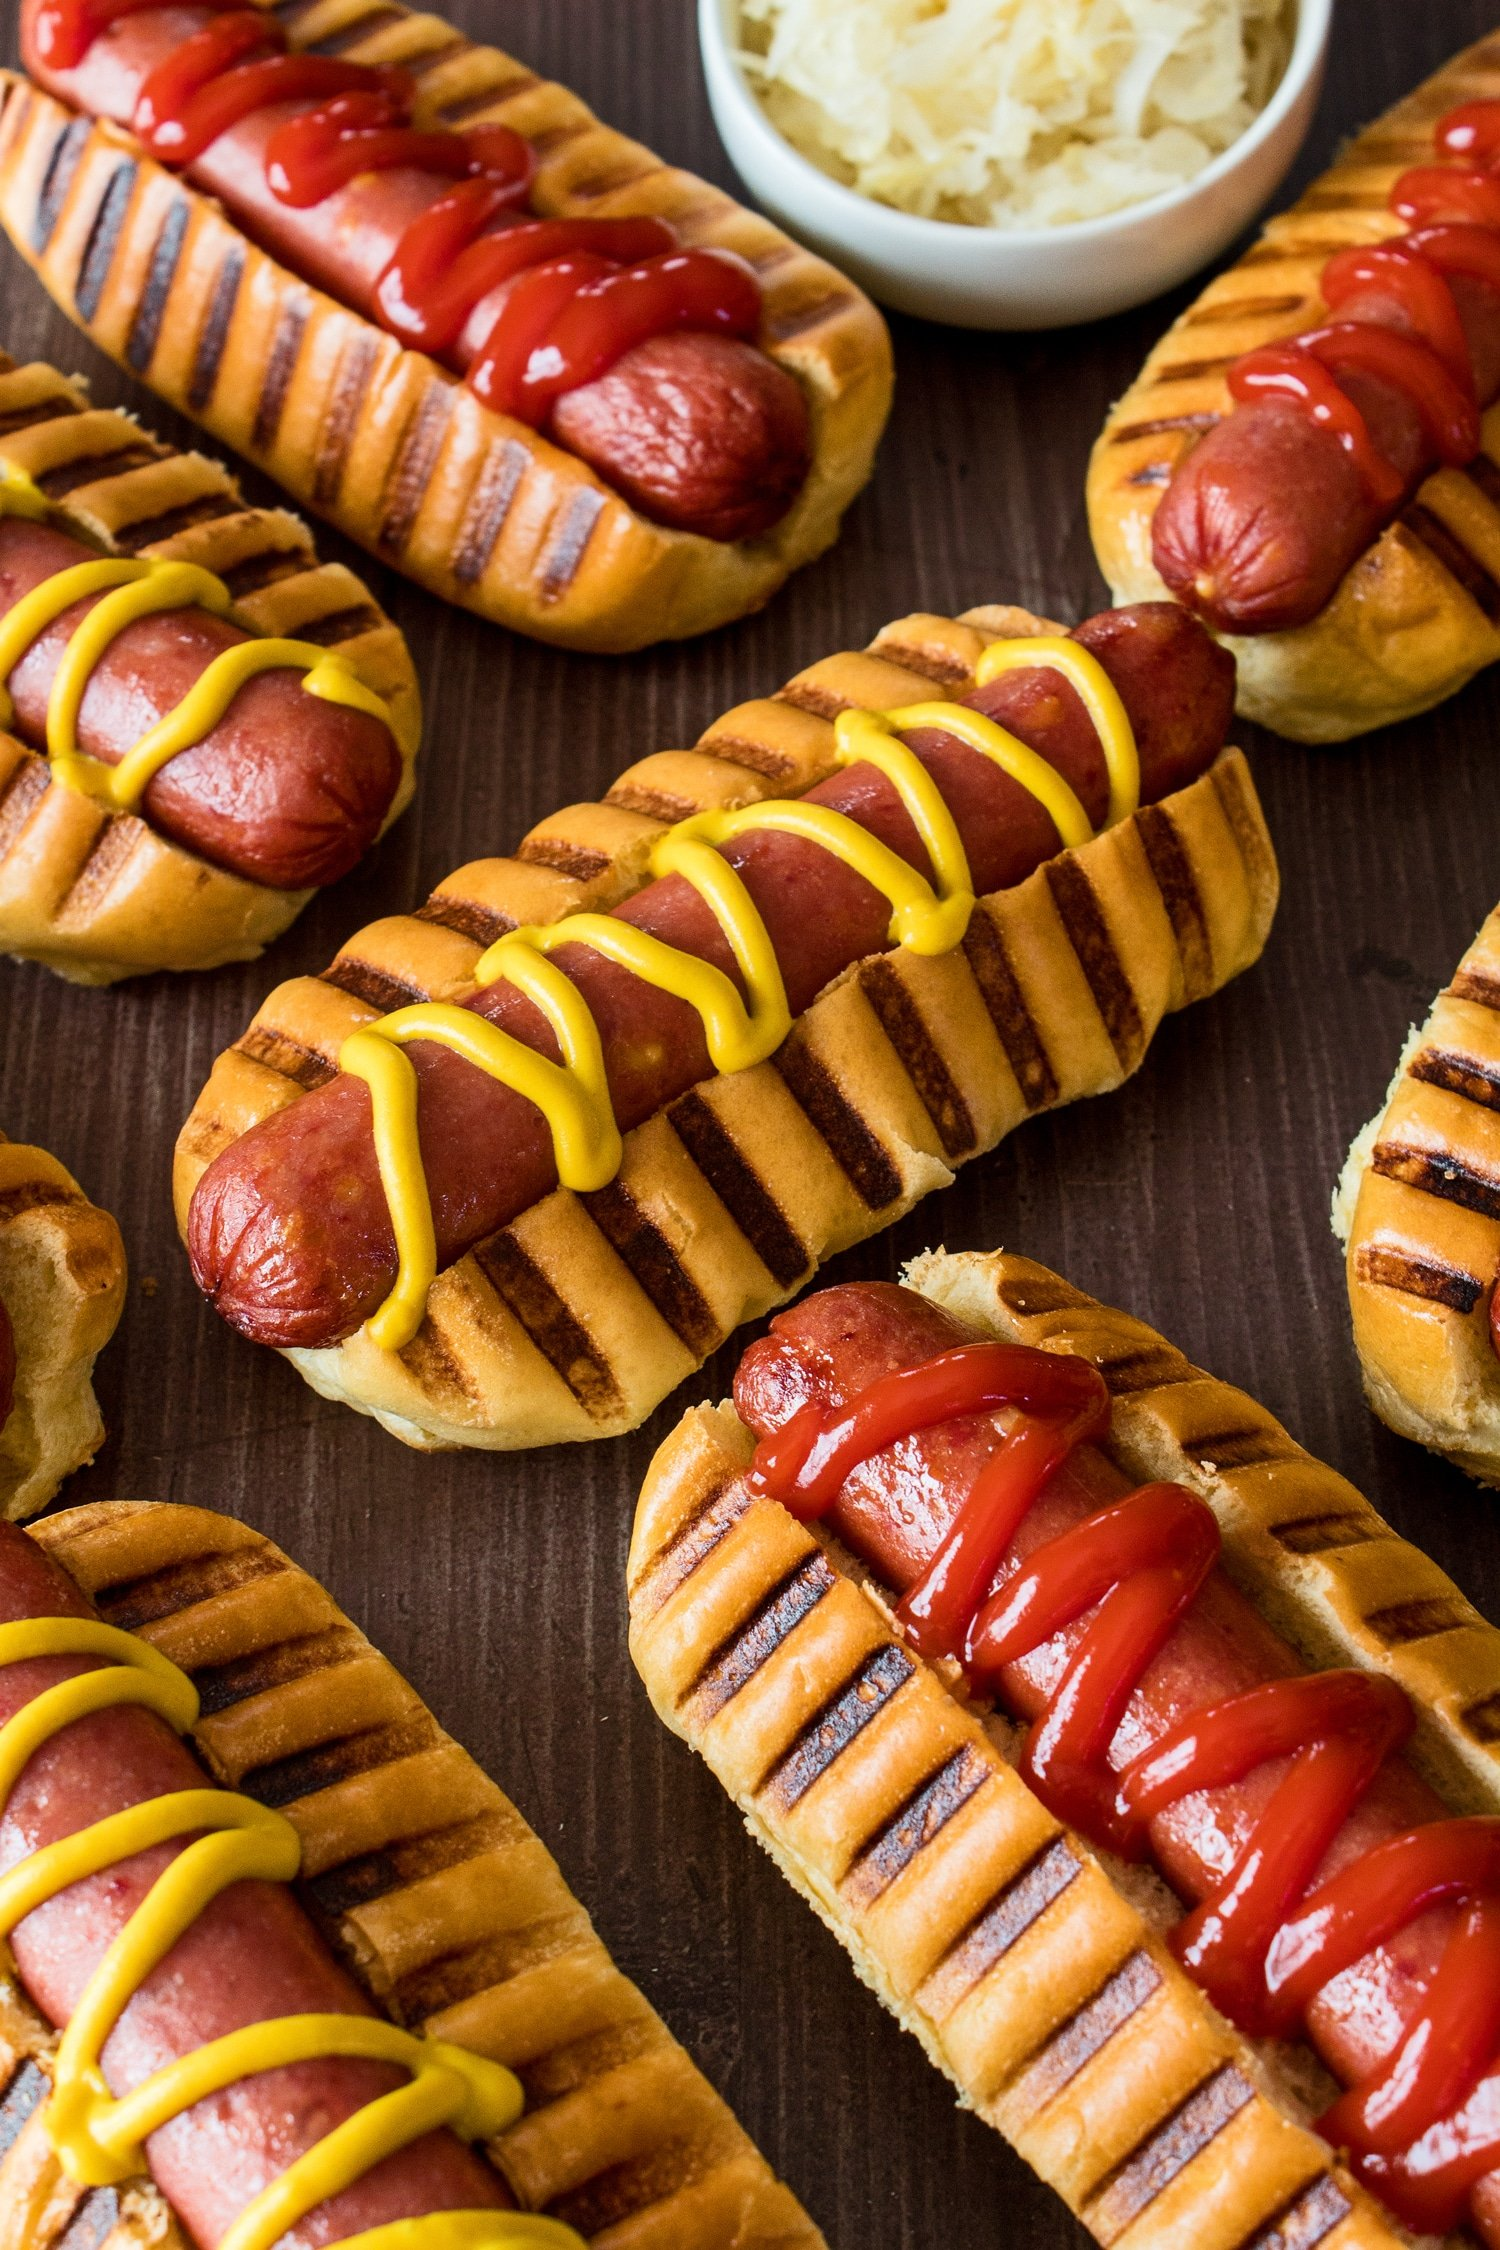 Vertical image taken from the side with the ketchup and mustard garnished air fryer hot dogs in the front and sauerkraut in the background.